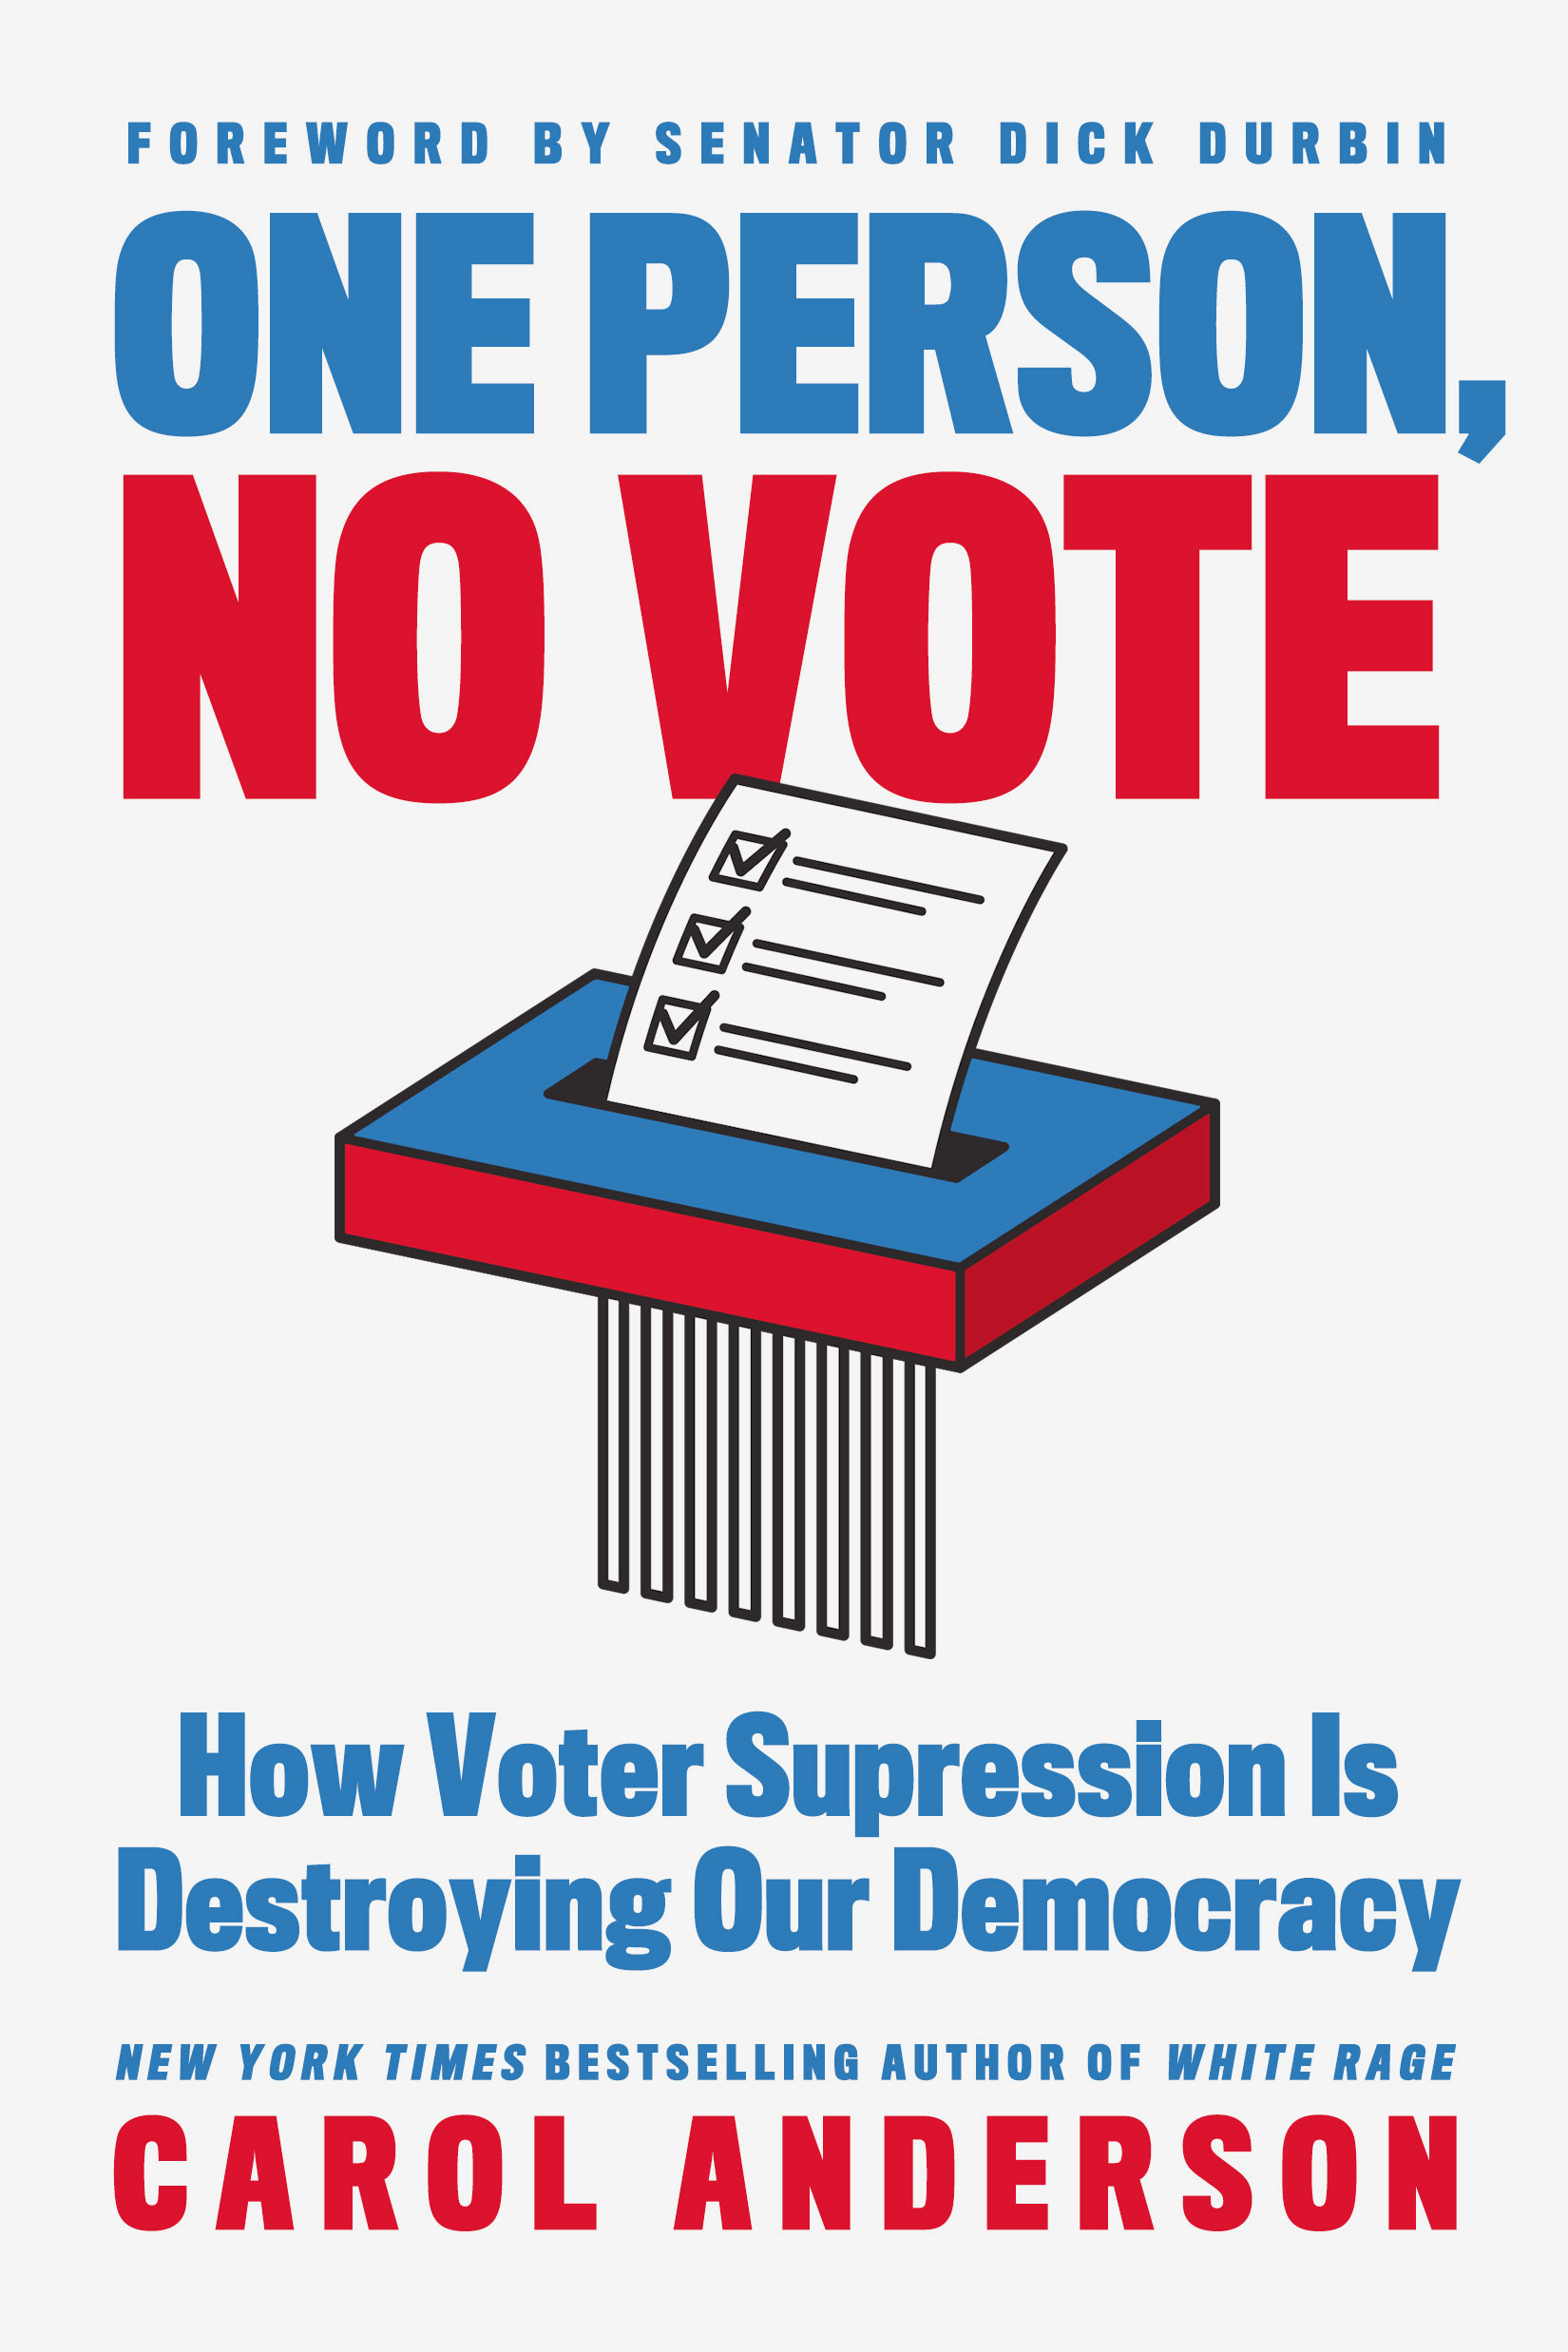 One Person, No Vote by Carol Anderson Designed by Ben Mautner for One Hour Covers